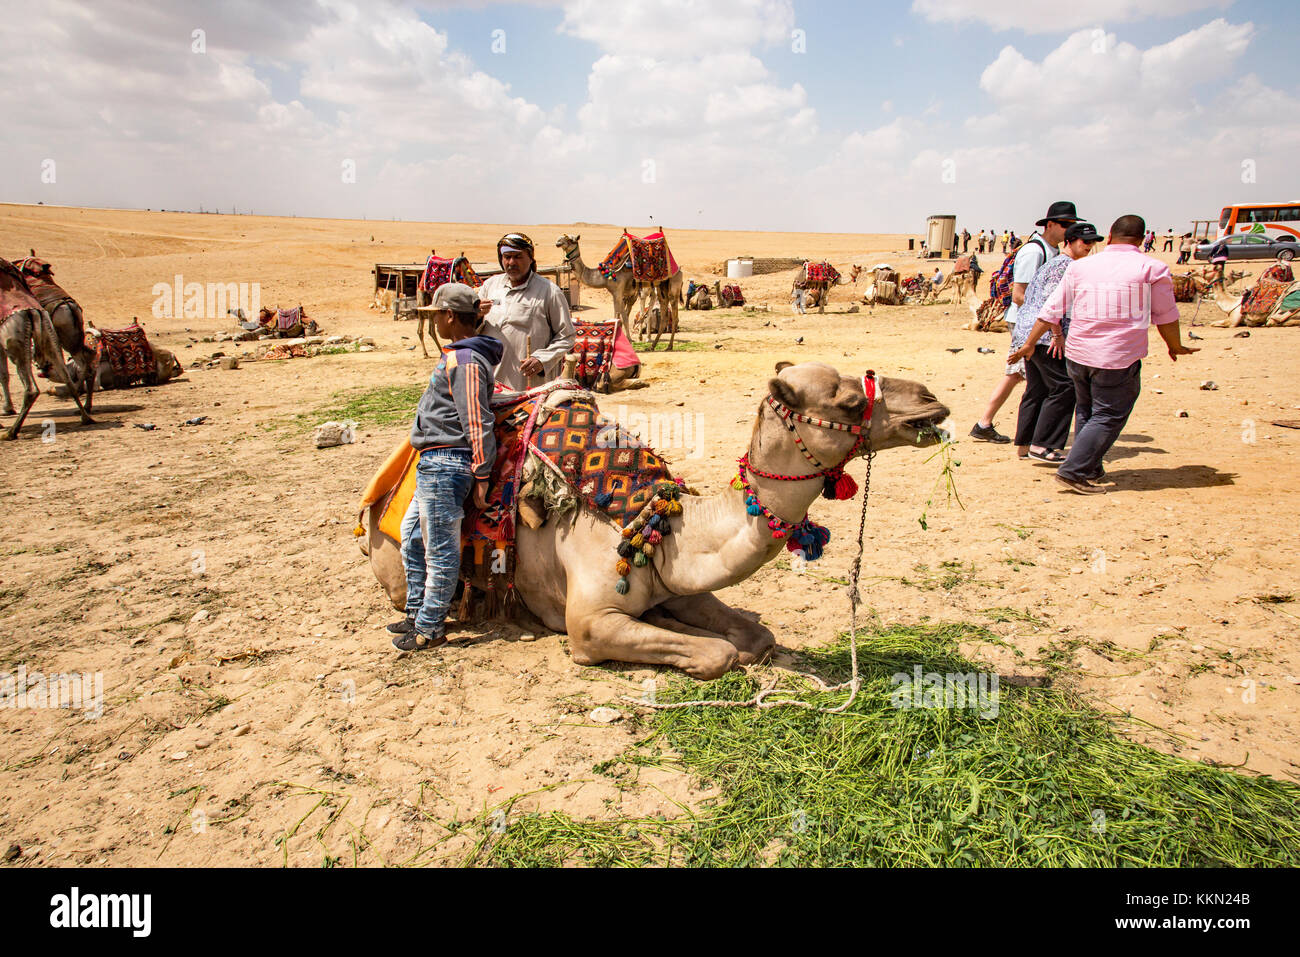 Camels for tours of the Pyramids from the desert on the Giza Plateau. - Stock Image